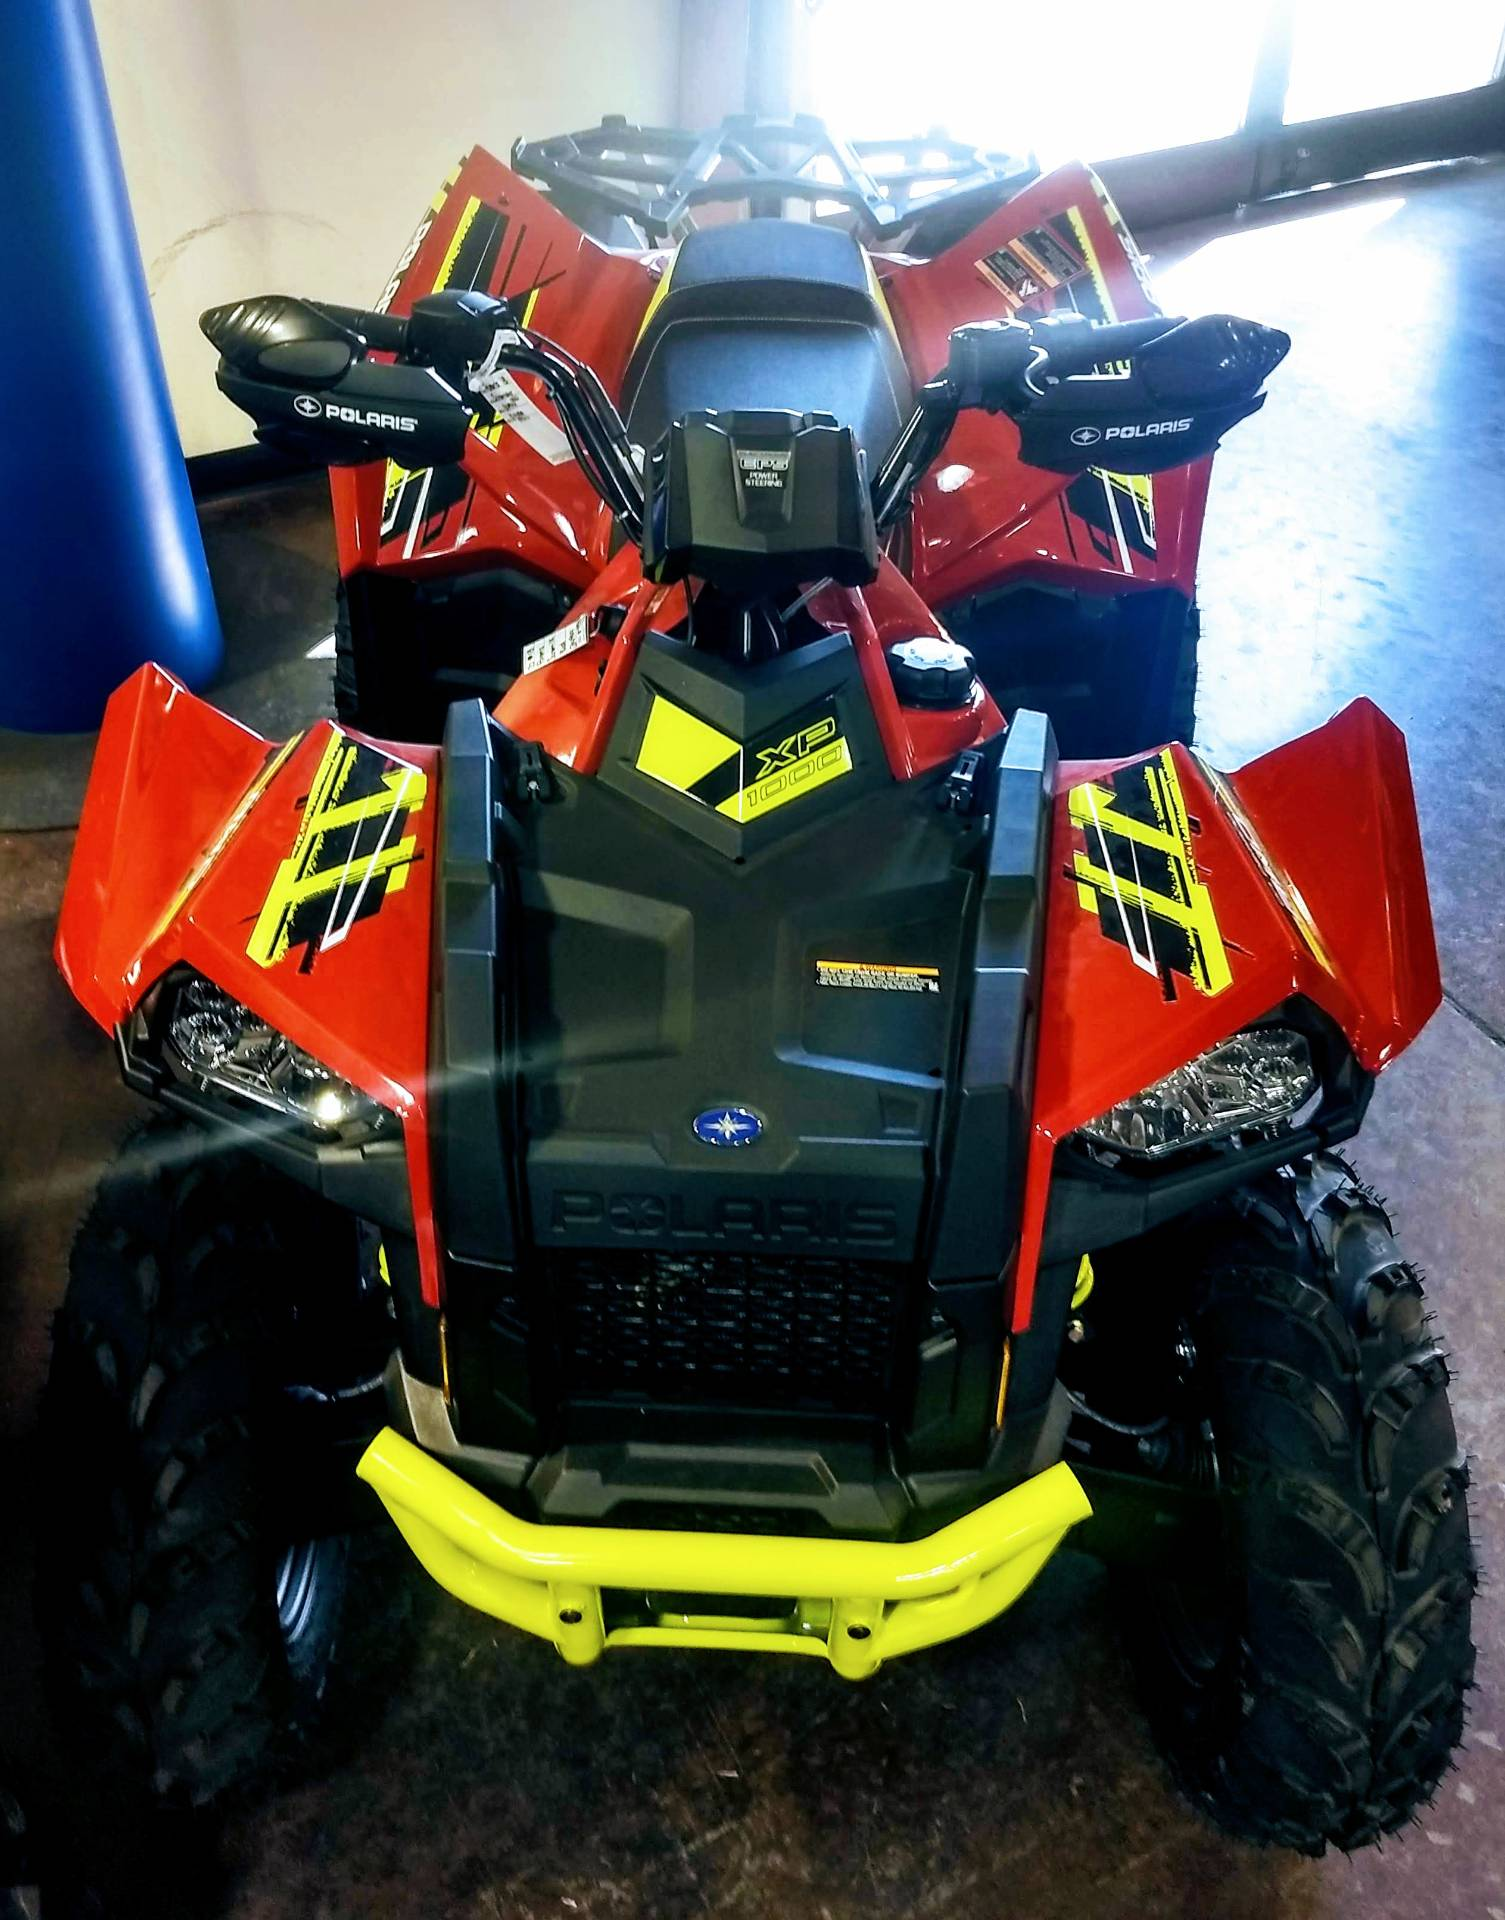 2018 Polaris Scrambler XP 1000 in Statesville, North Carolina - Photo 6